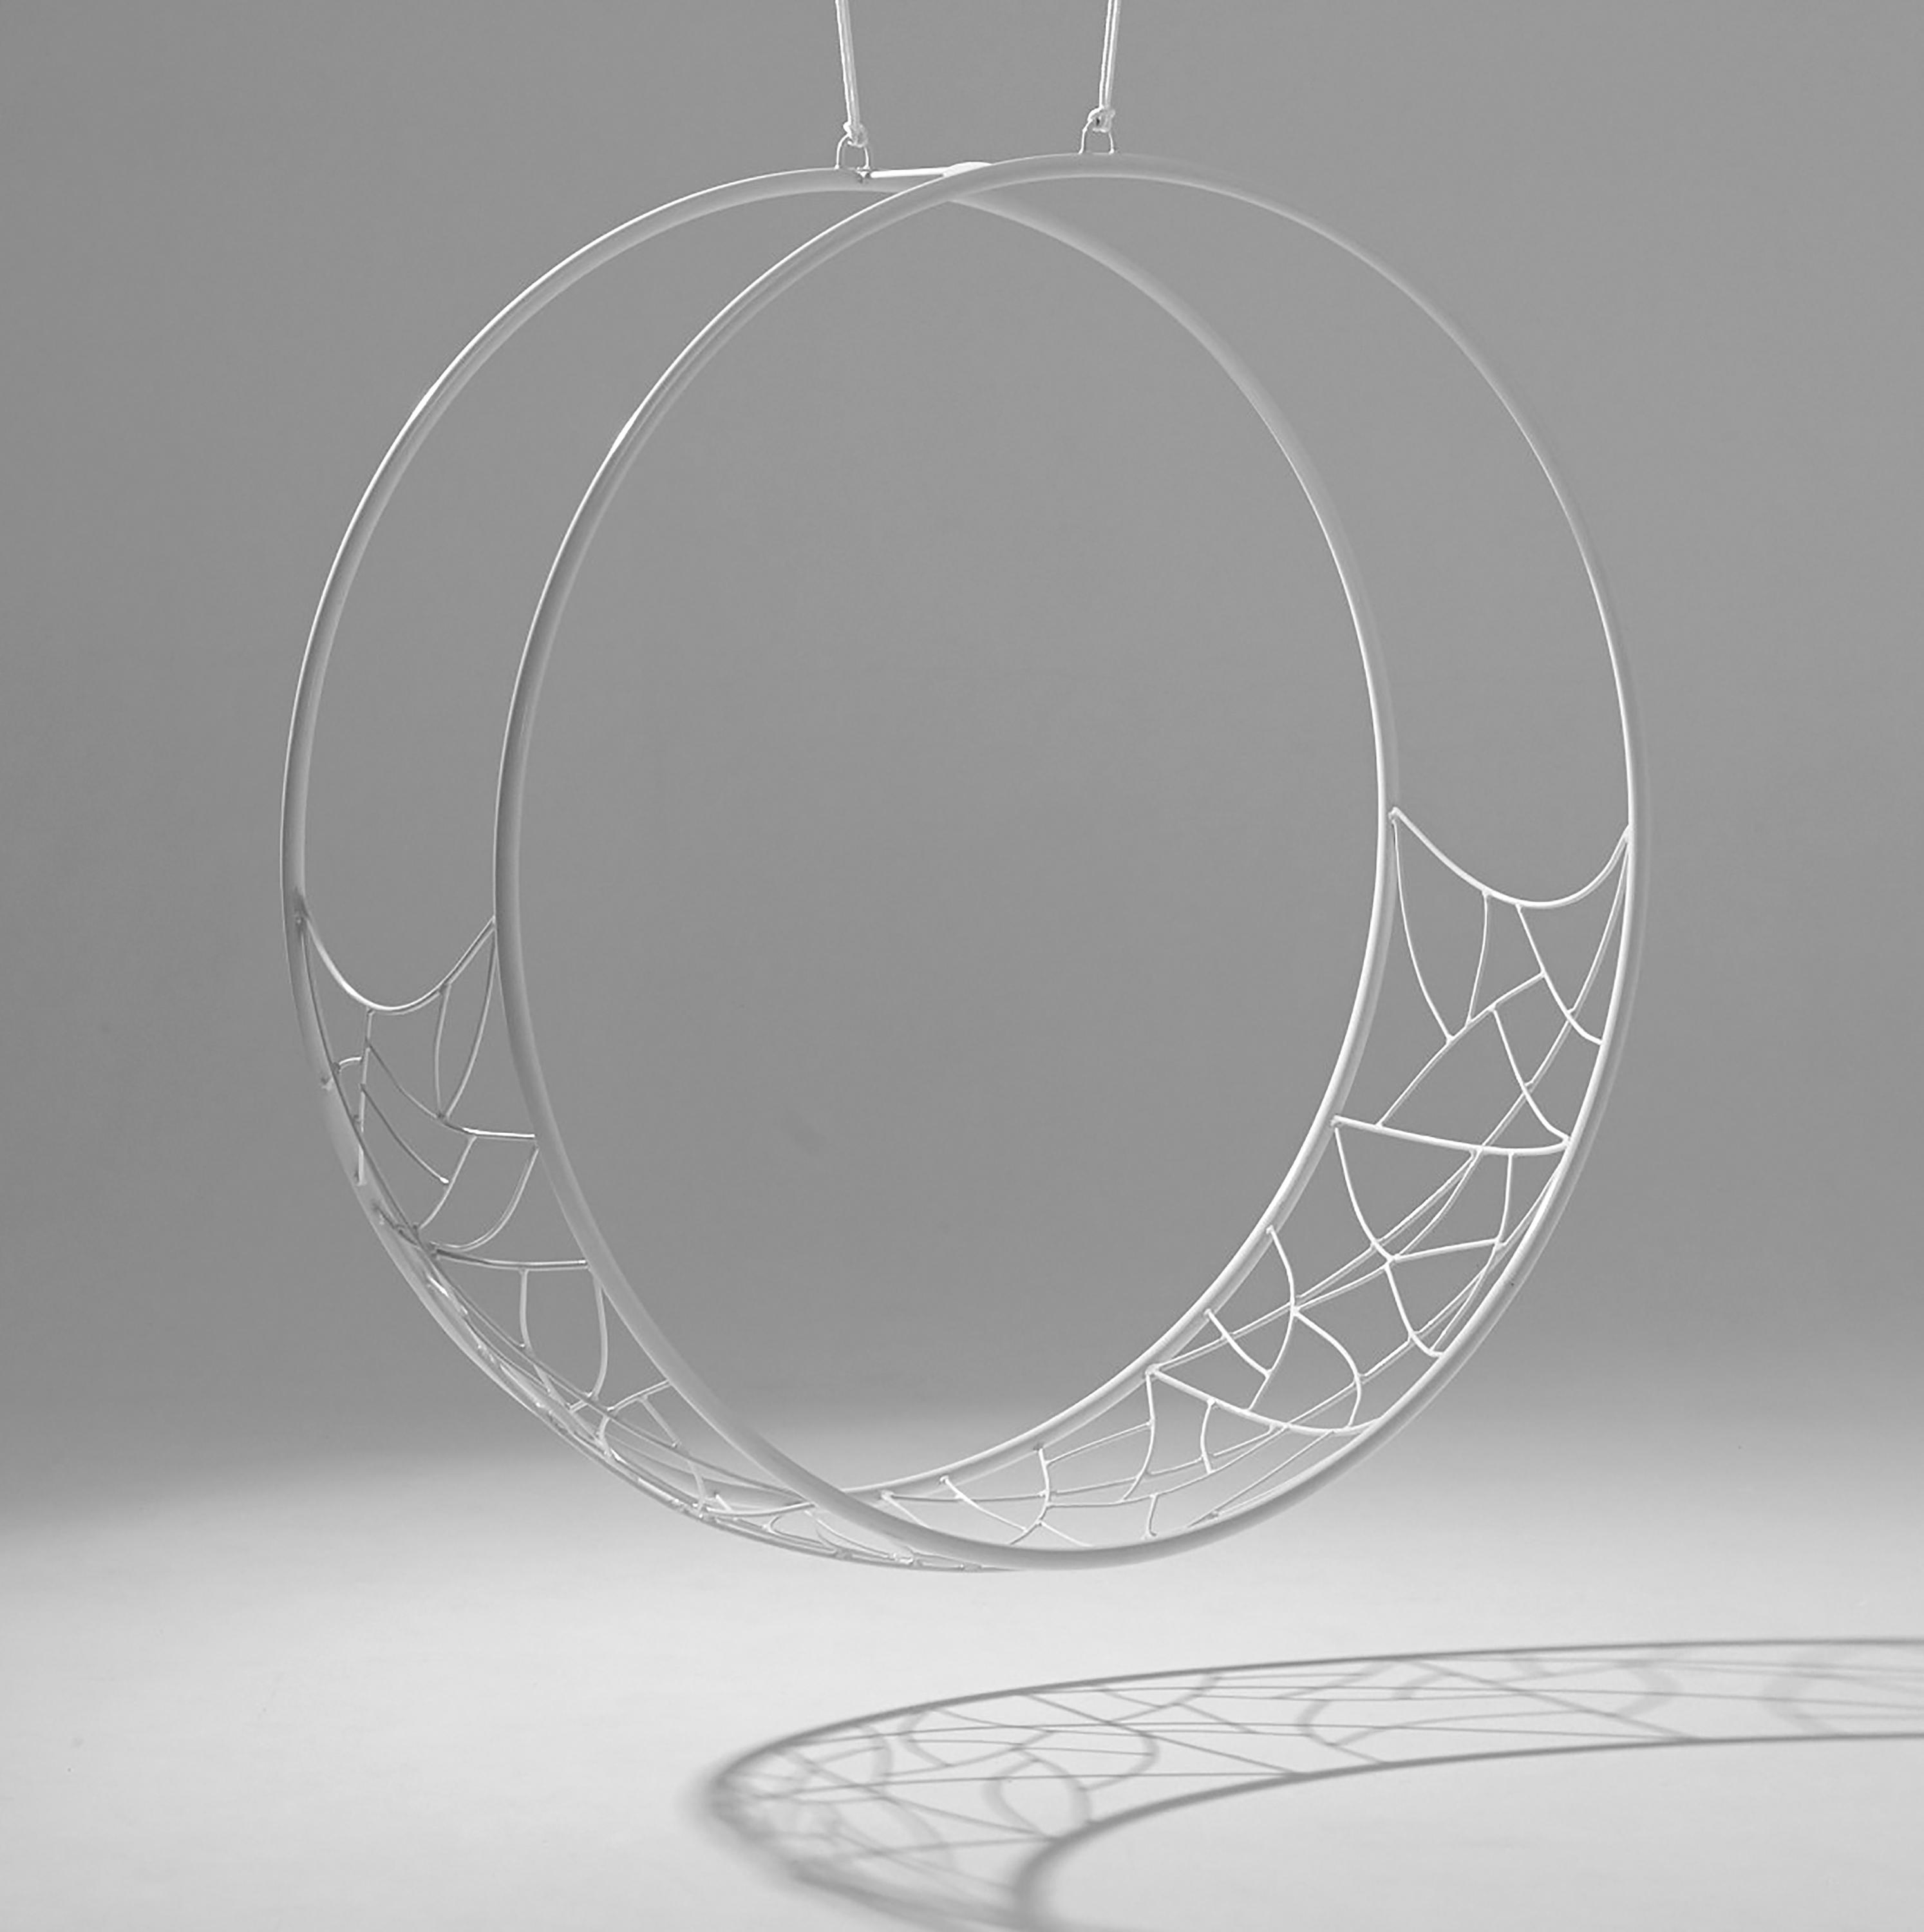 swing chair johannesburg wedding covers etsy wheel hanging swings from studio stirling architonic by